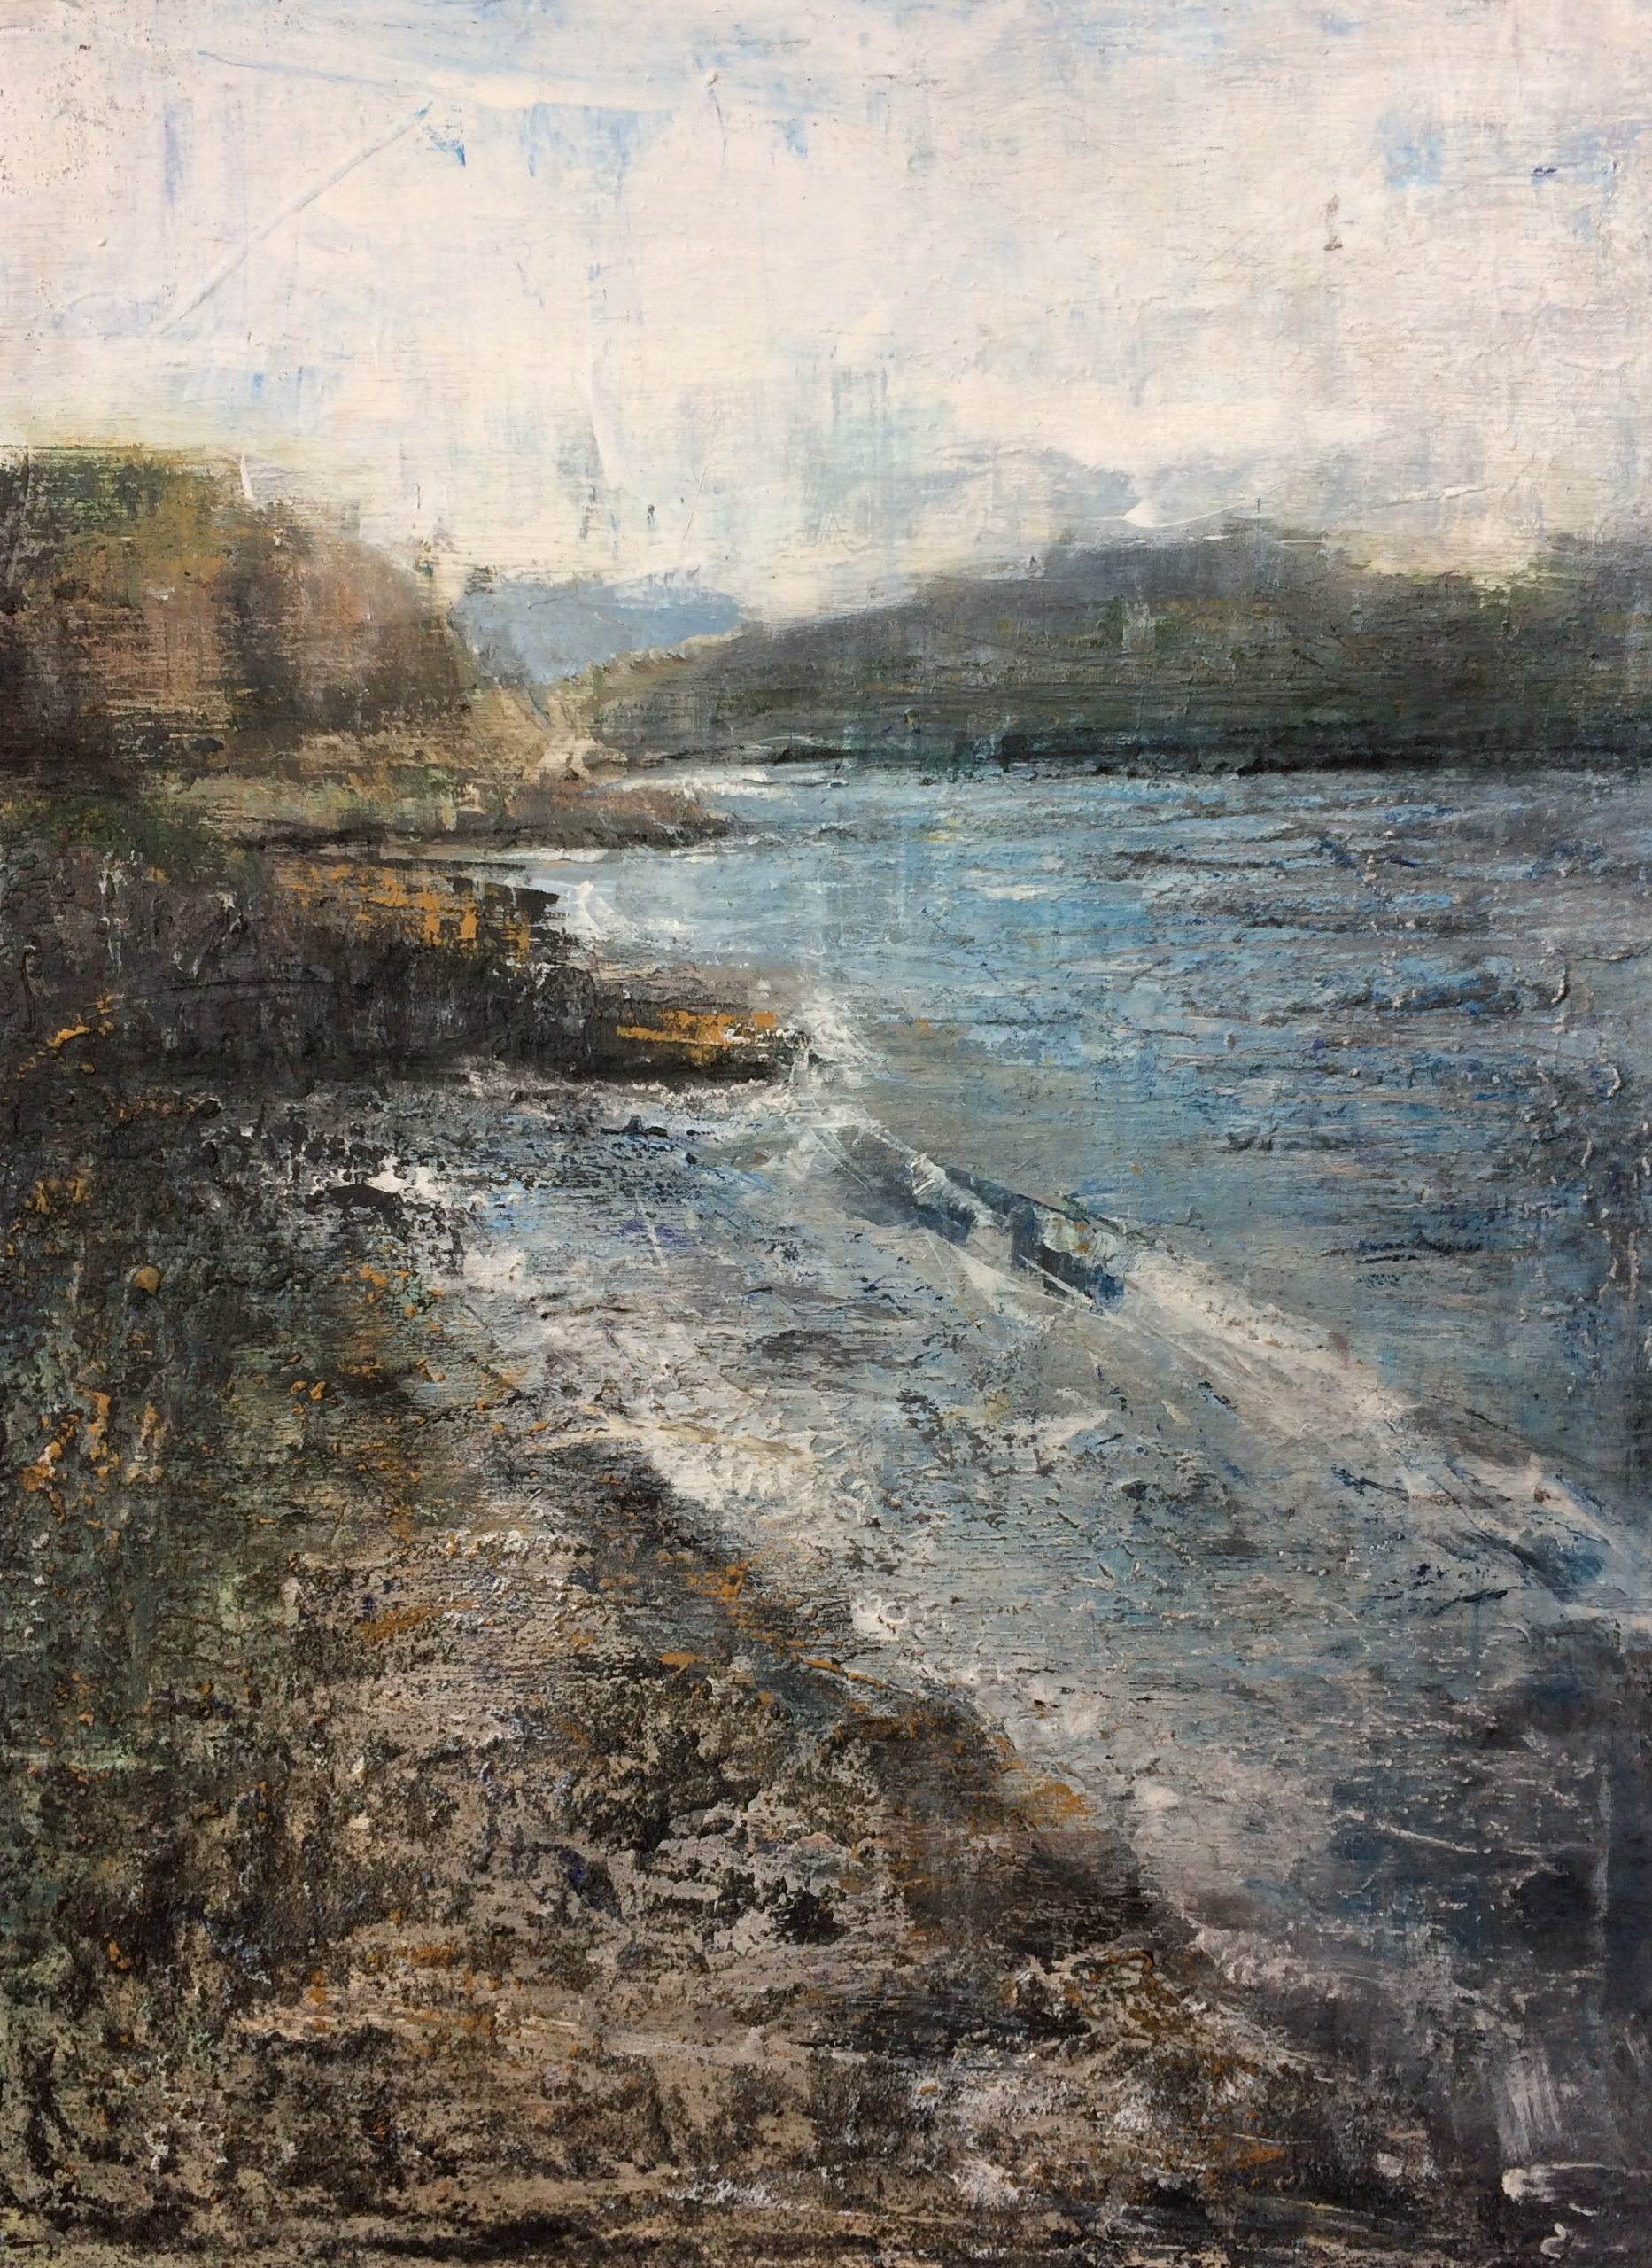 Isle Of Mull. Mixed Media on Board. 30/40cm. Landscape painting. Acrylic on Board.